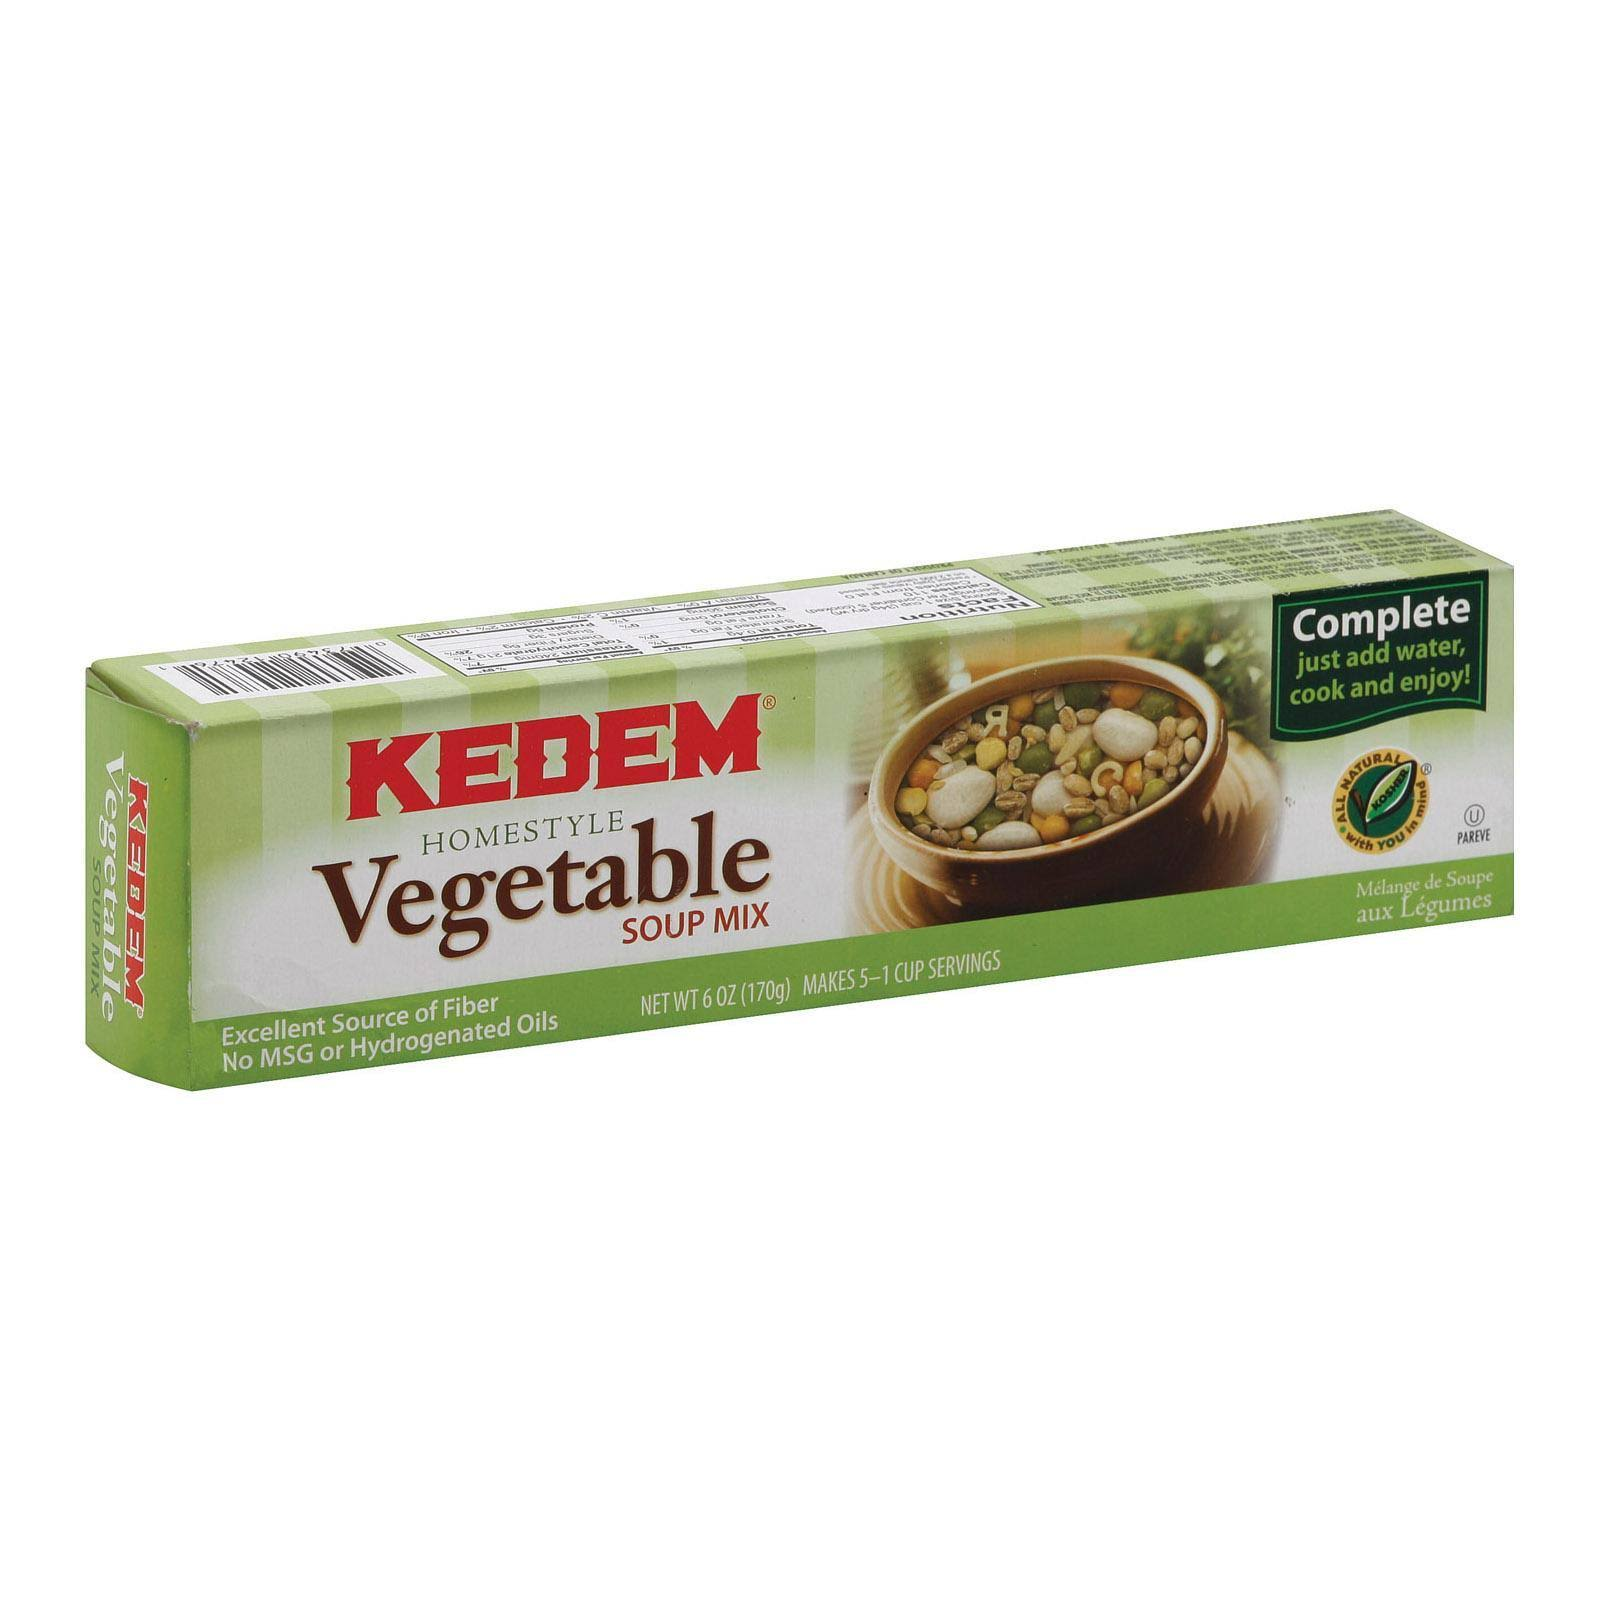 Kedem Homestyle Vegetable with Barley Soup Mix